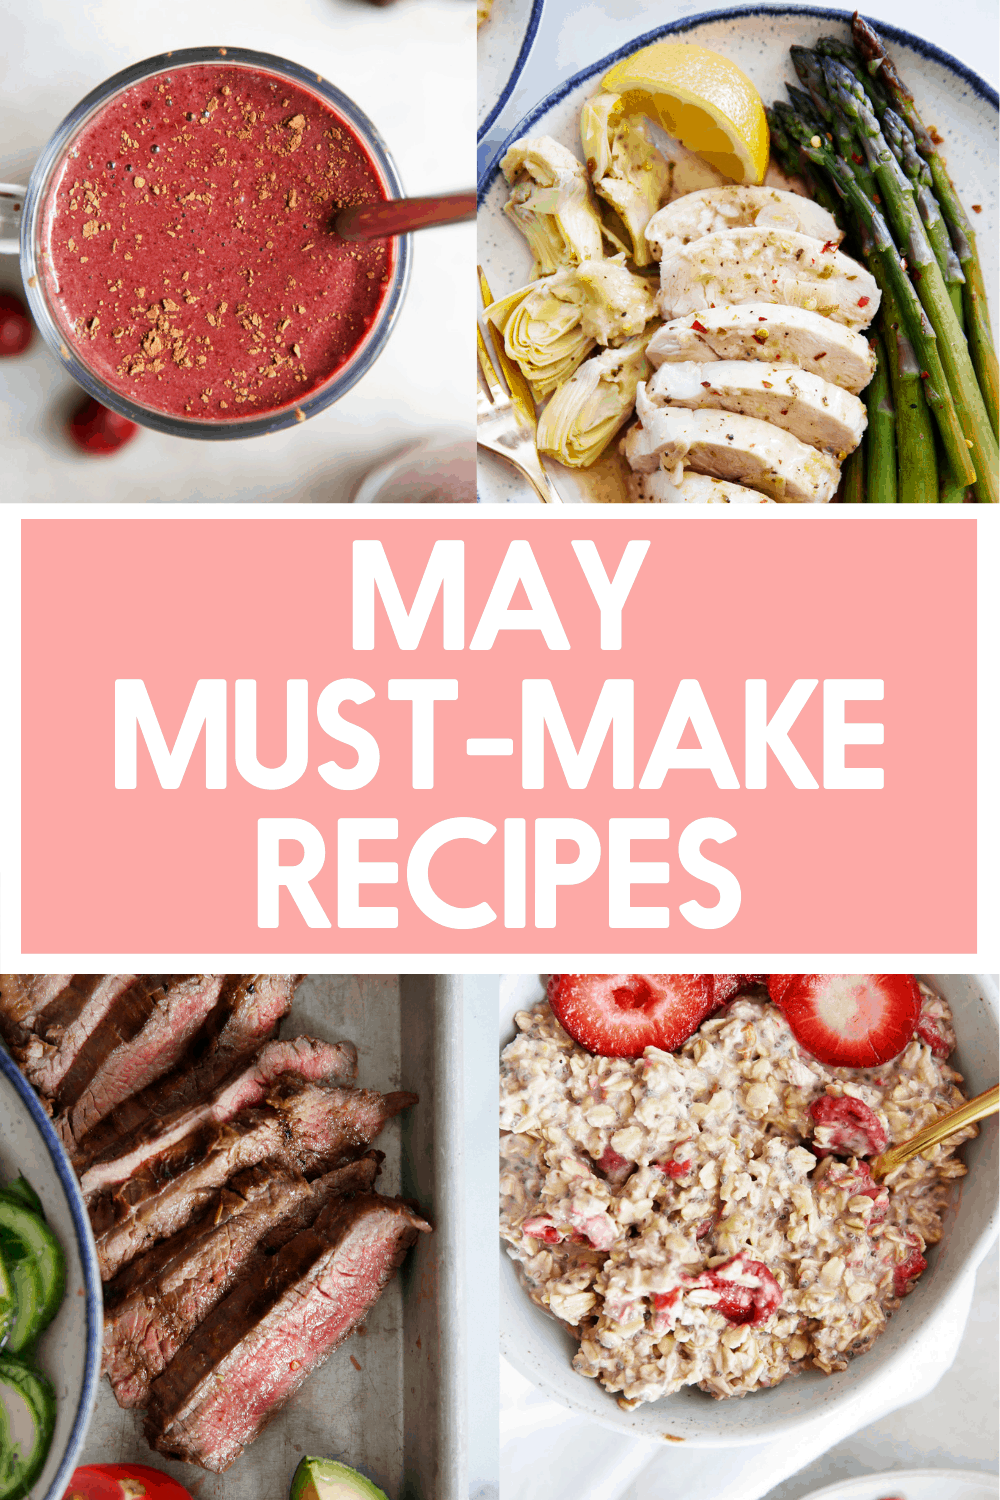 Recipes to make in may.